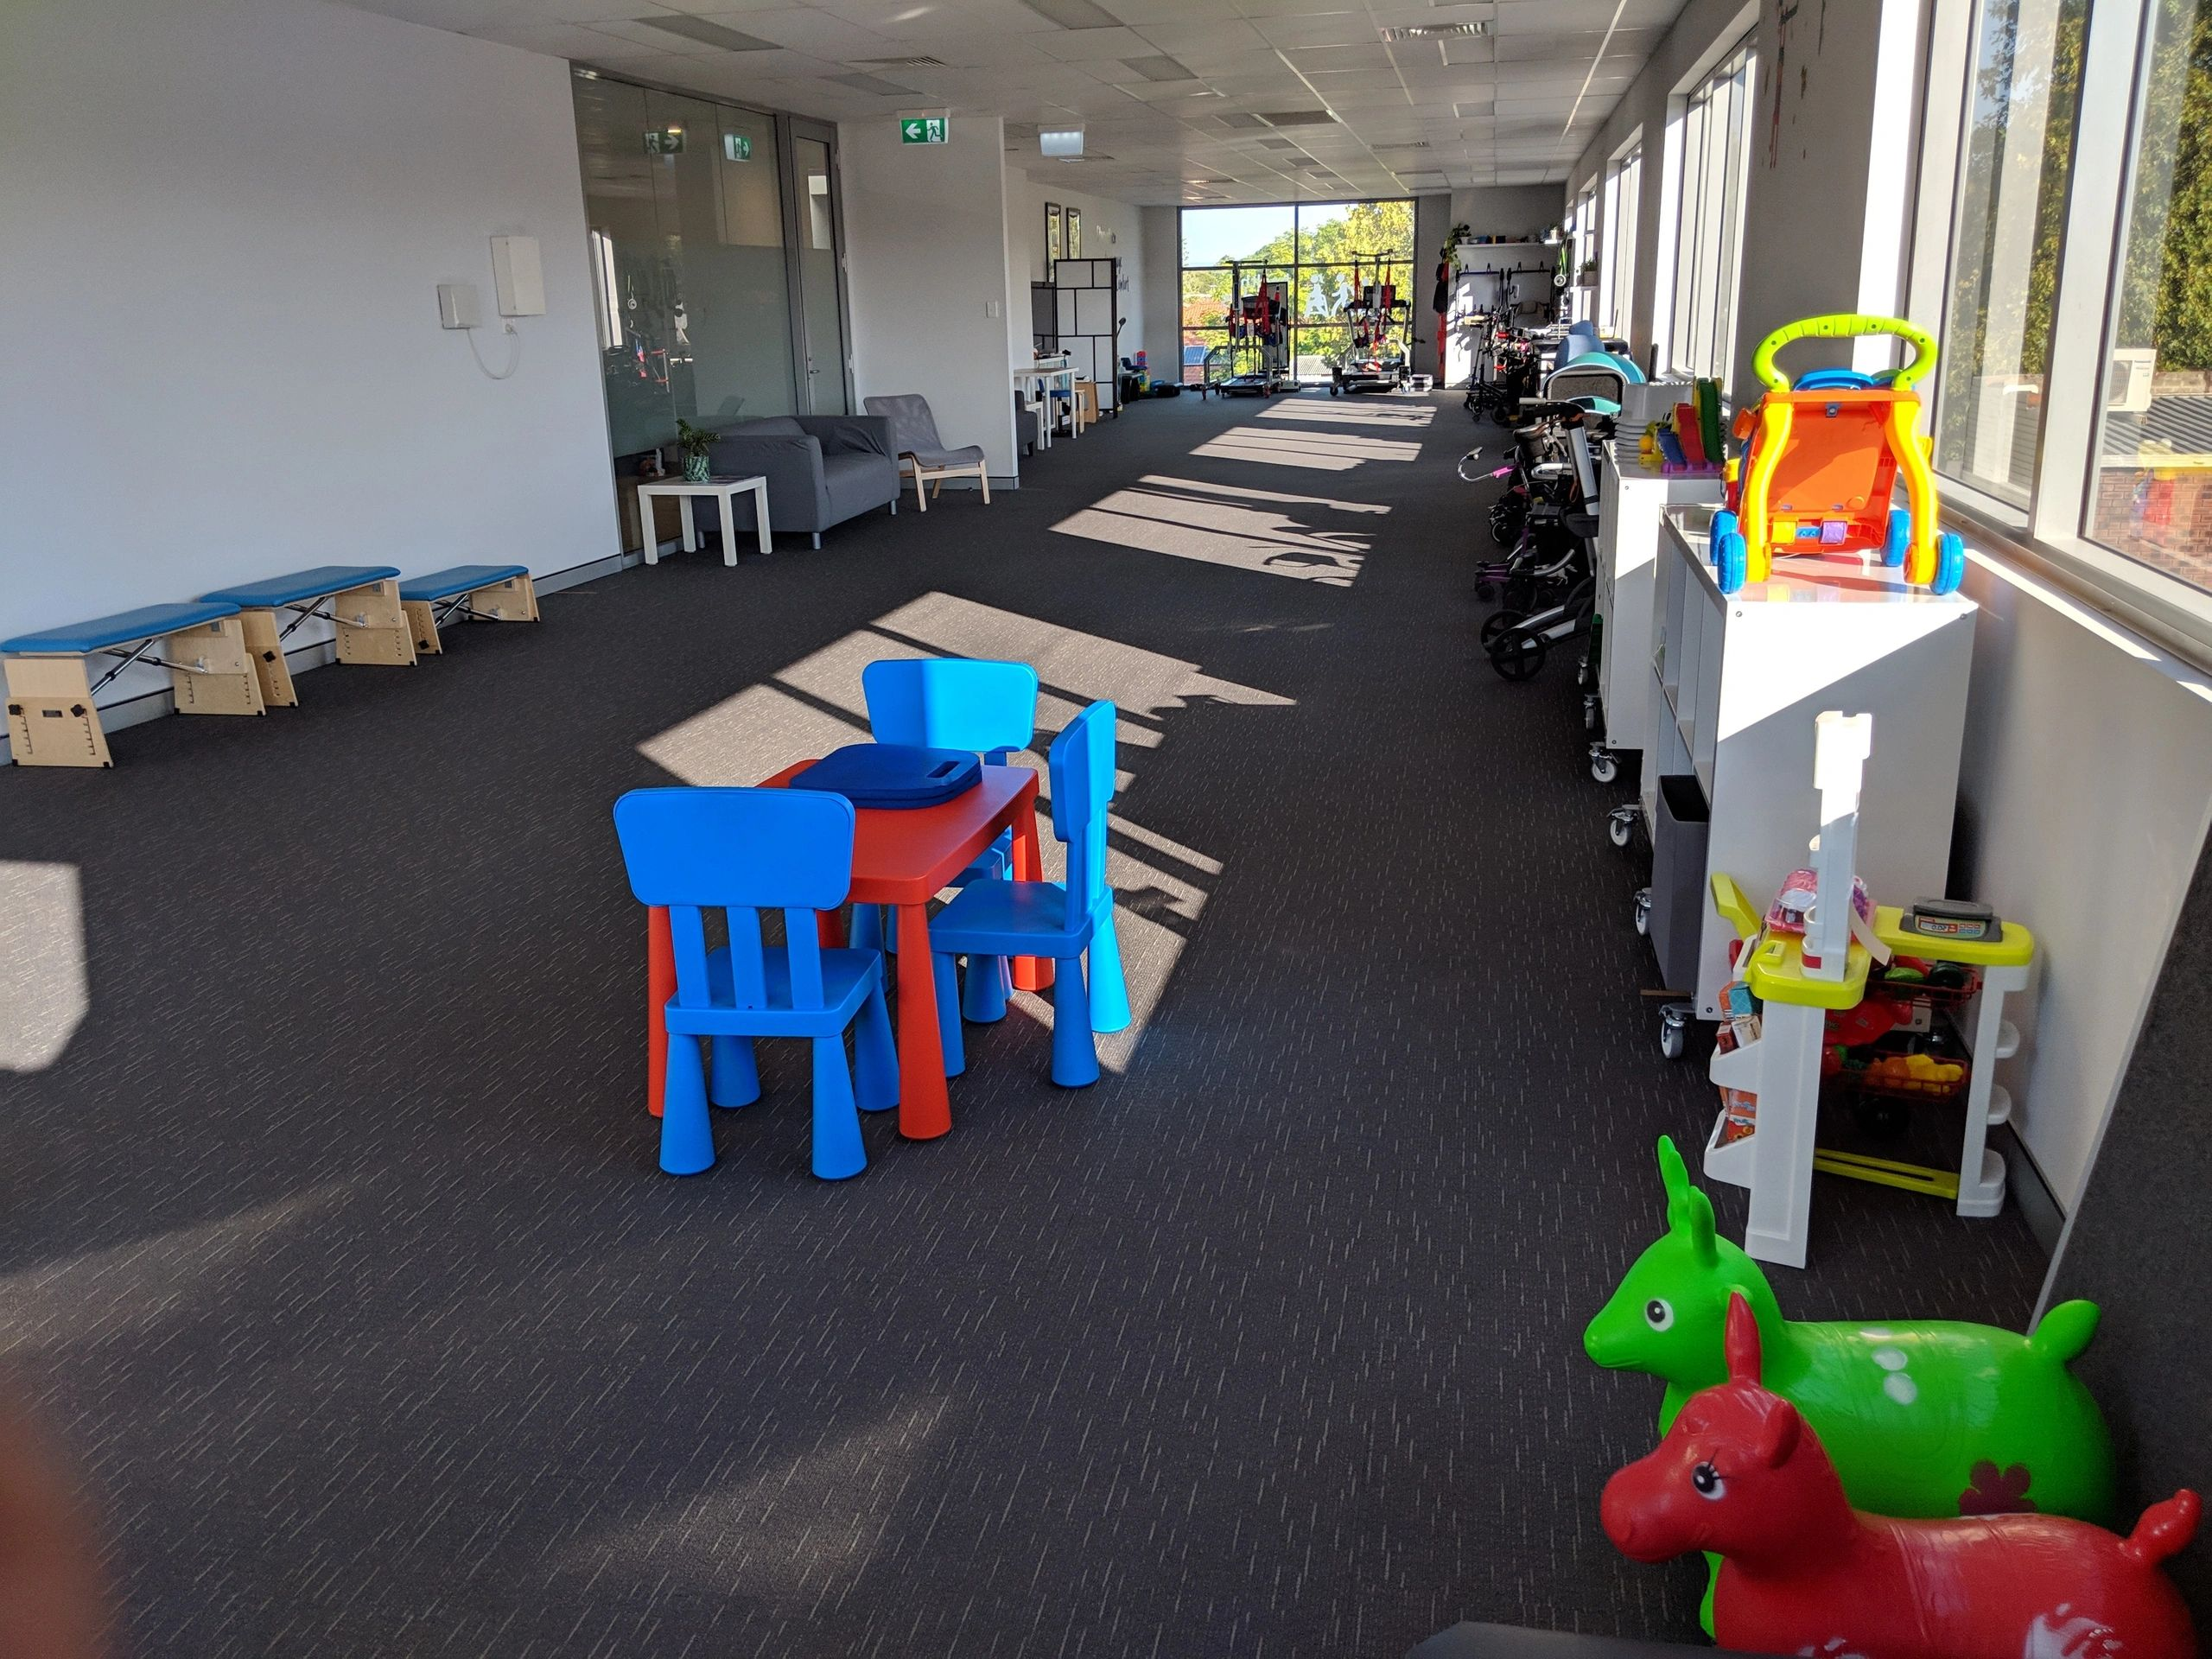 Providing Intensive Therapy services Perth Western Australia. Physiotherapy & Occupational Therapy